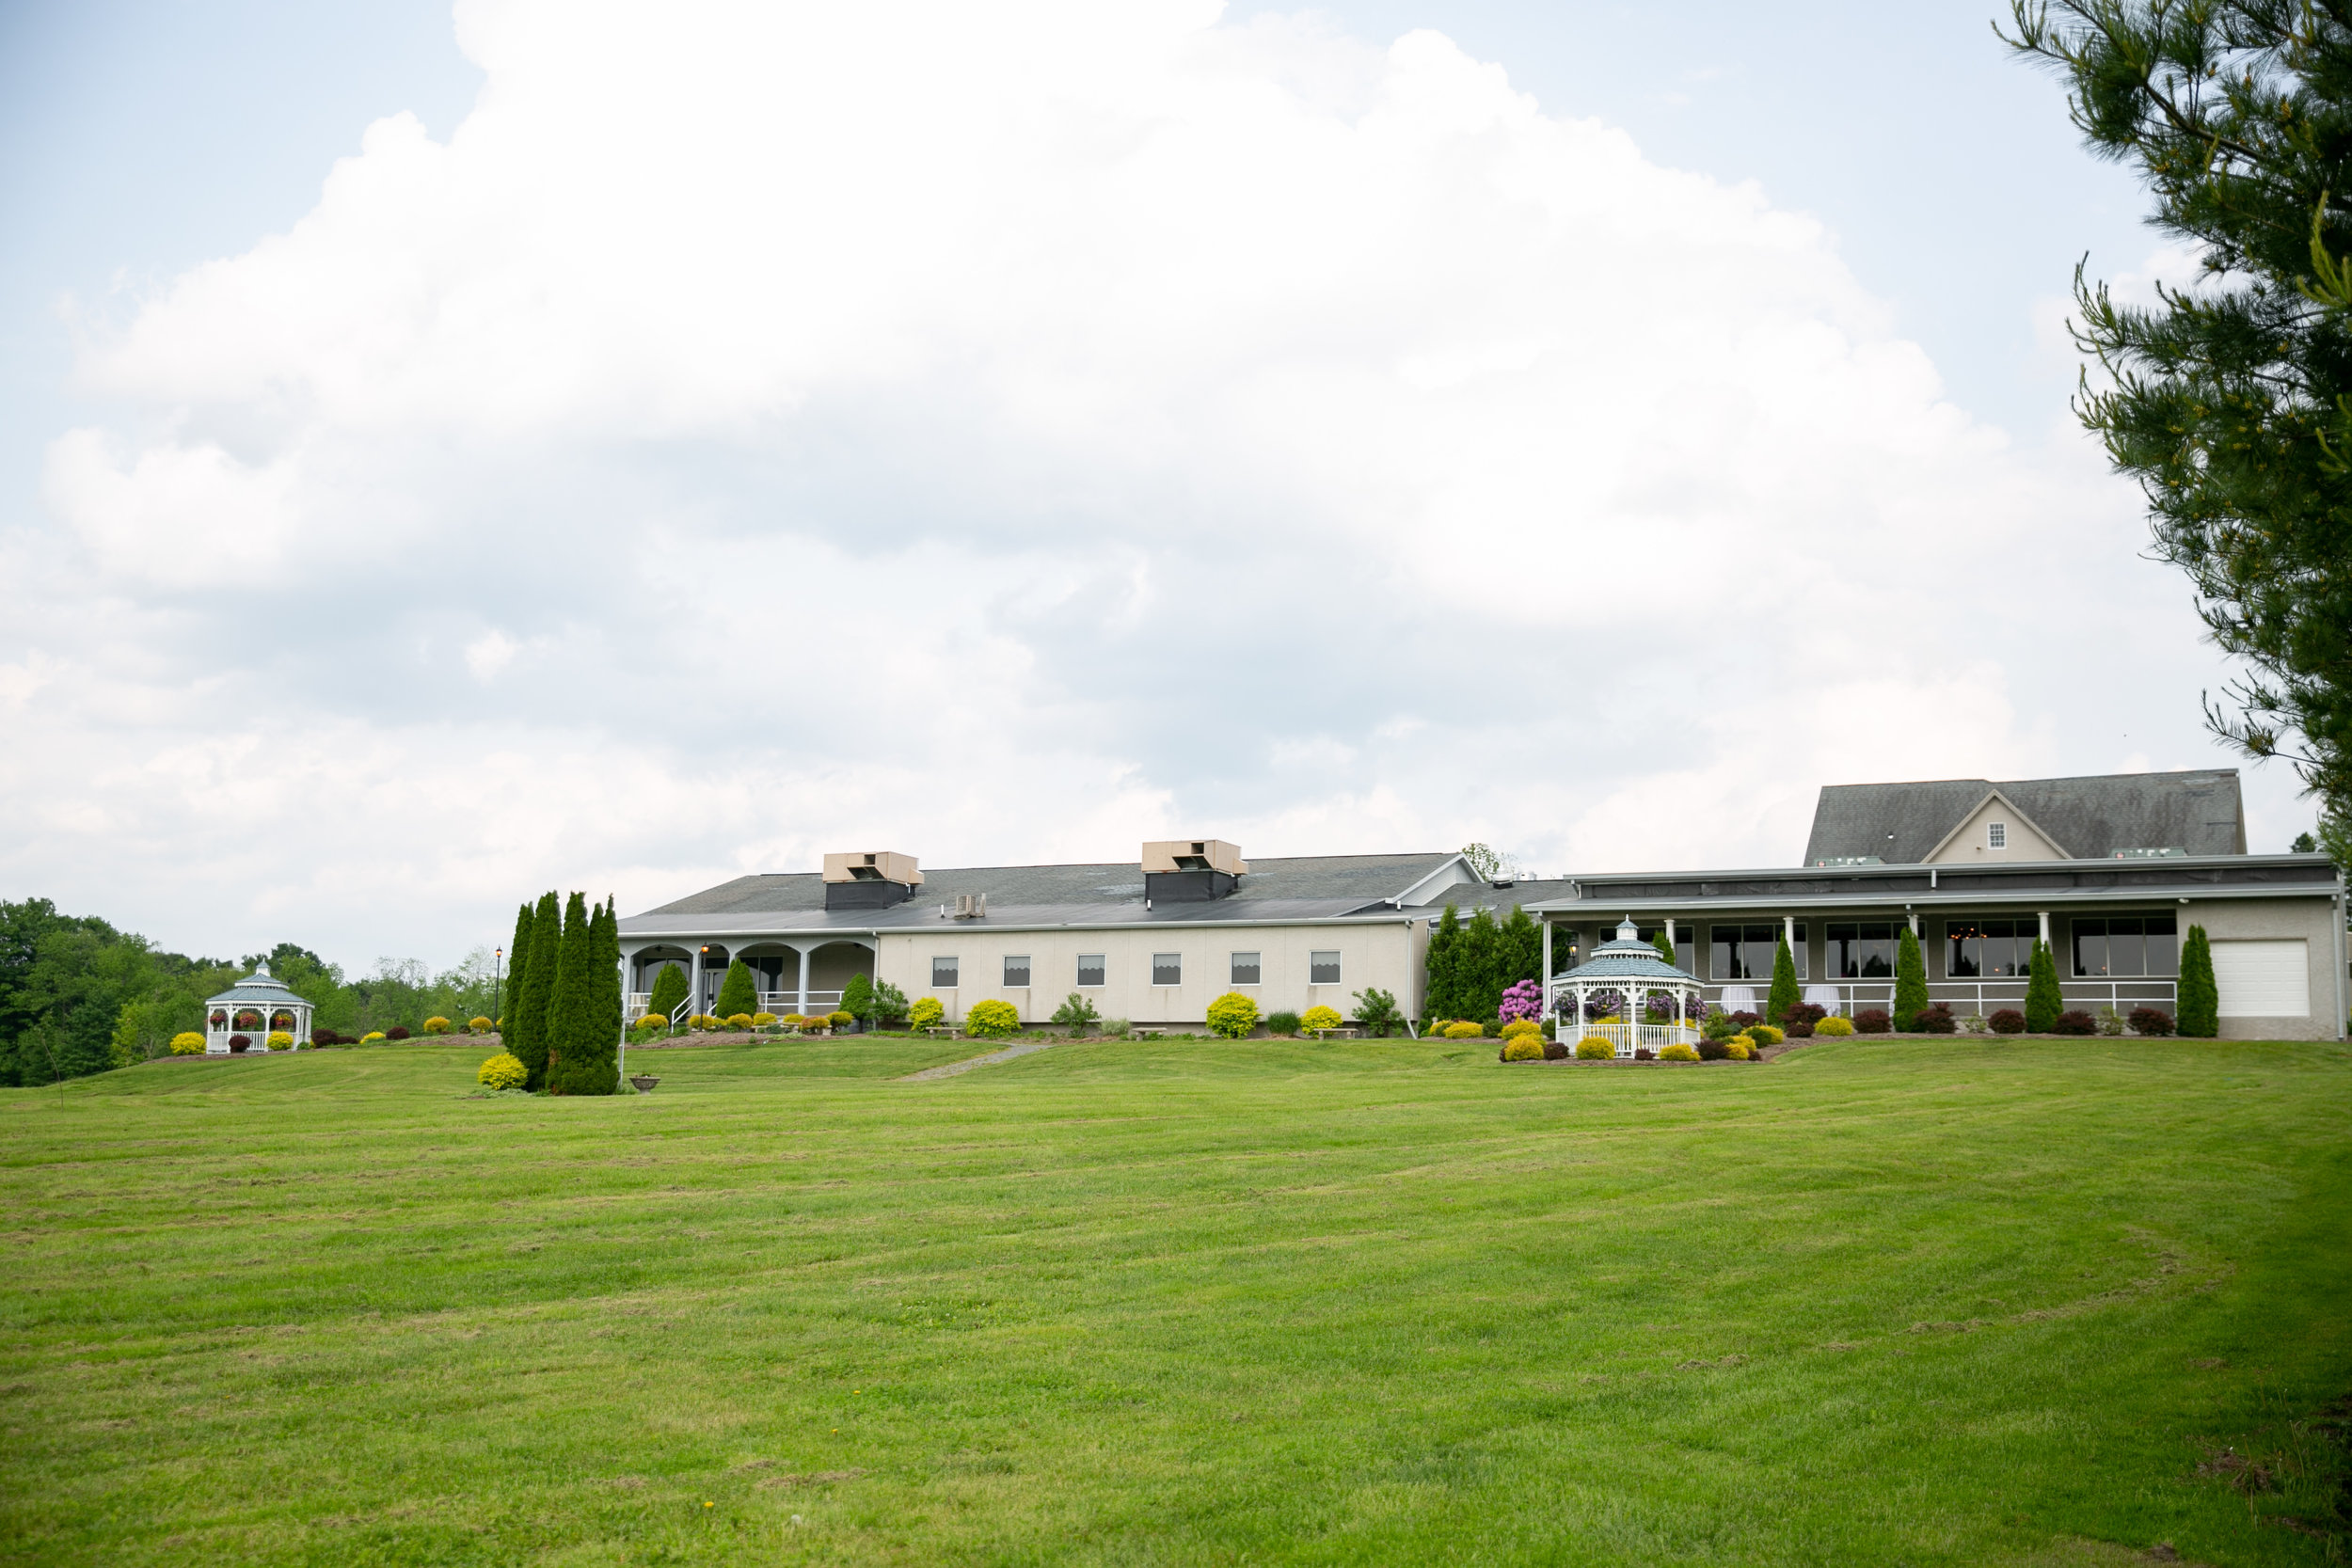 montdale-country-club-wedding-by-leahdanielsphotography58.jpg